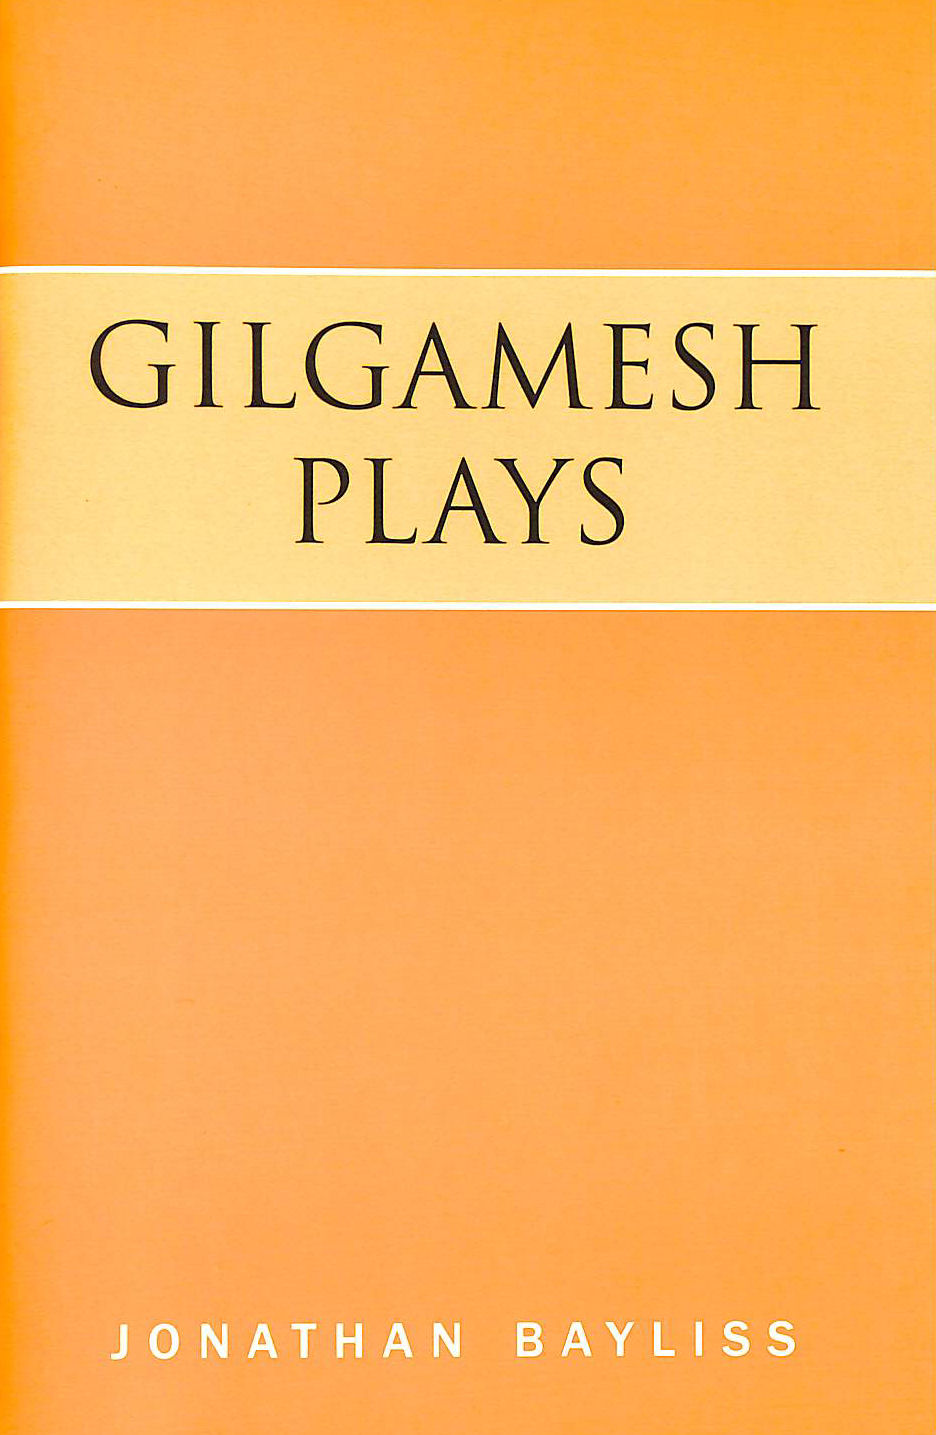 Image for Gilgamesh Plays: The Tower of Gilgamesh and The Acts of Gilgamesh